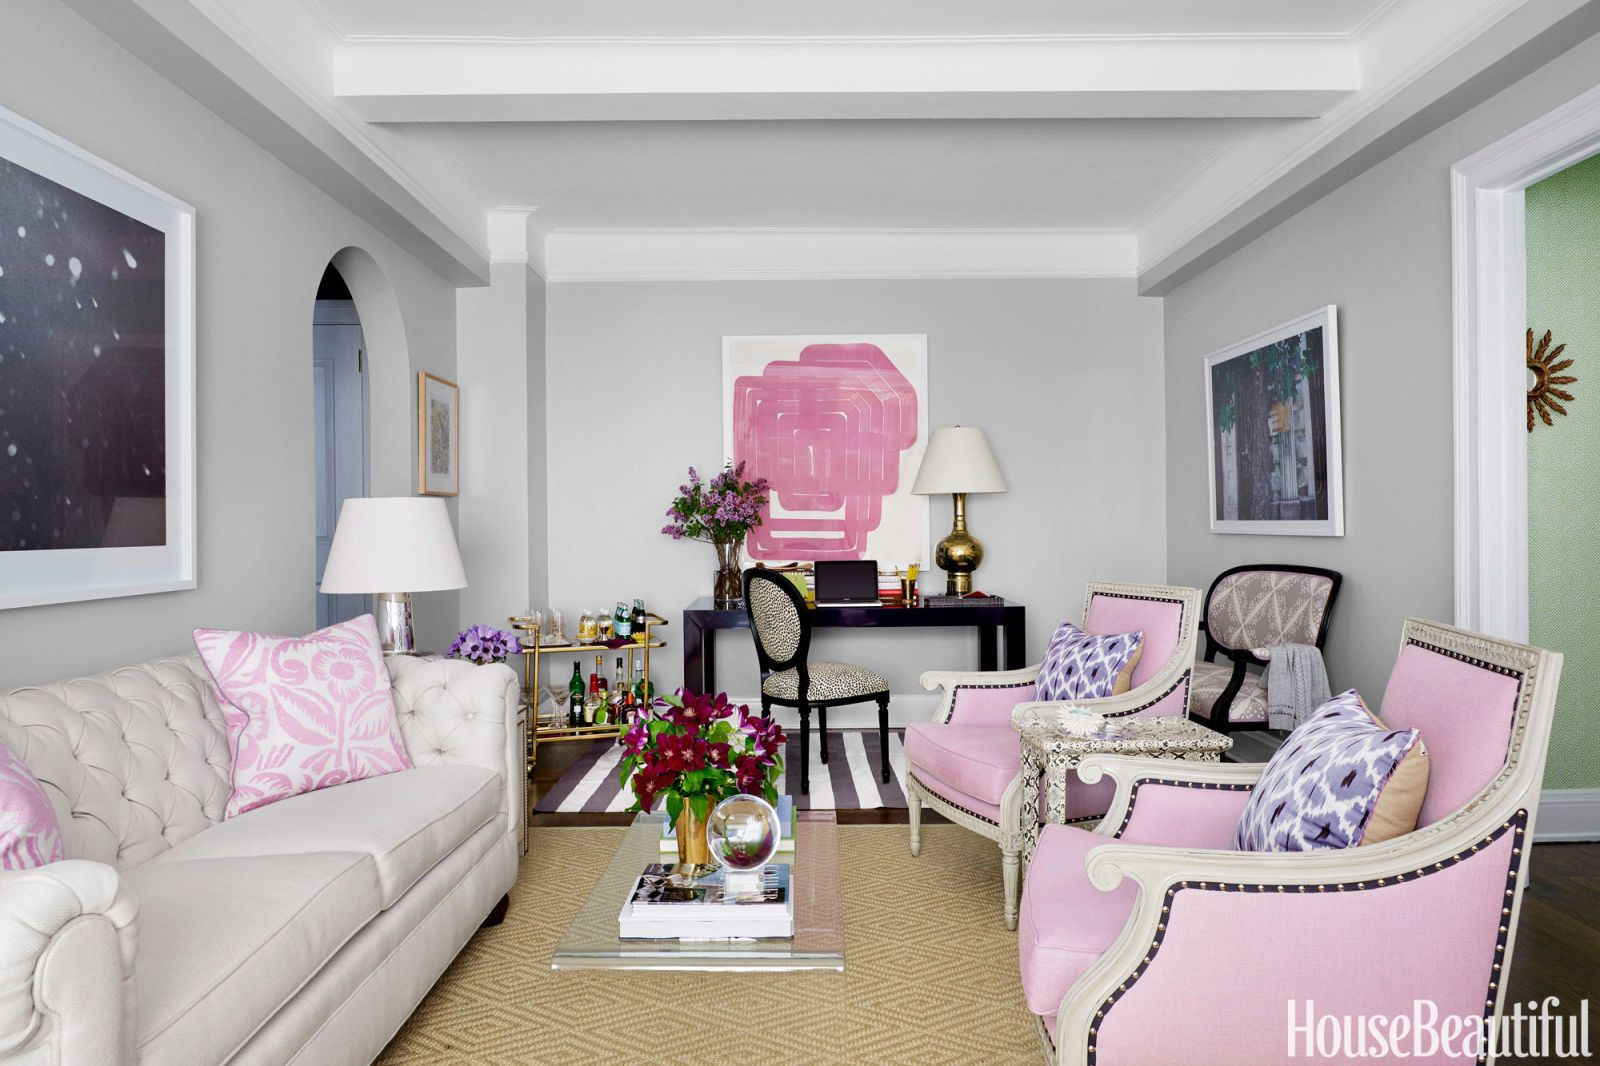 image & How to Decorate a Studio Apartment - Small Space Decorating Ideas